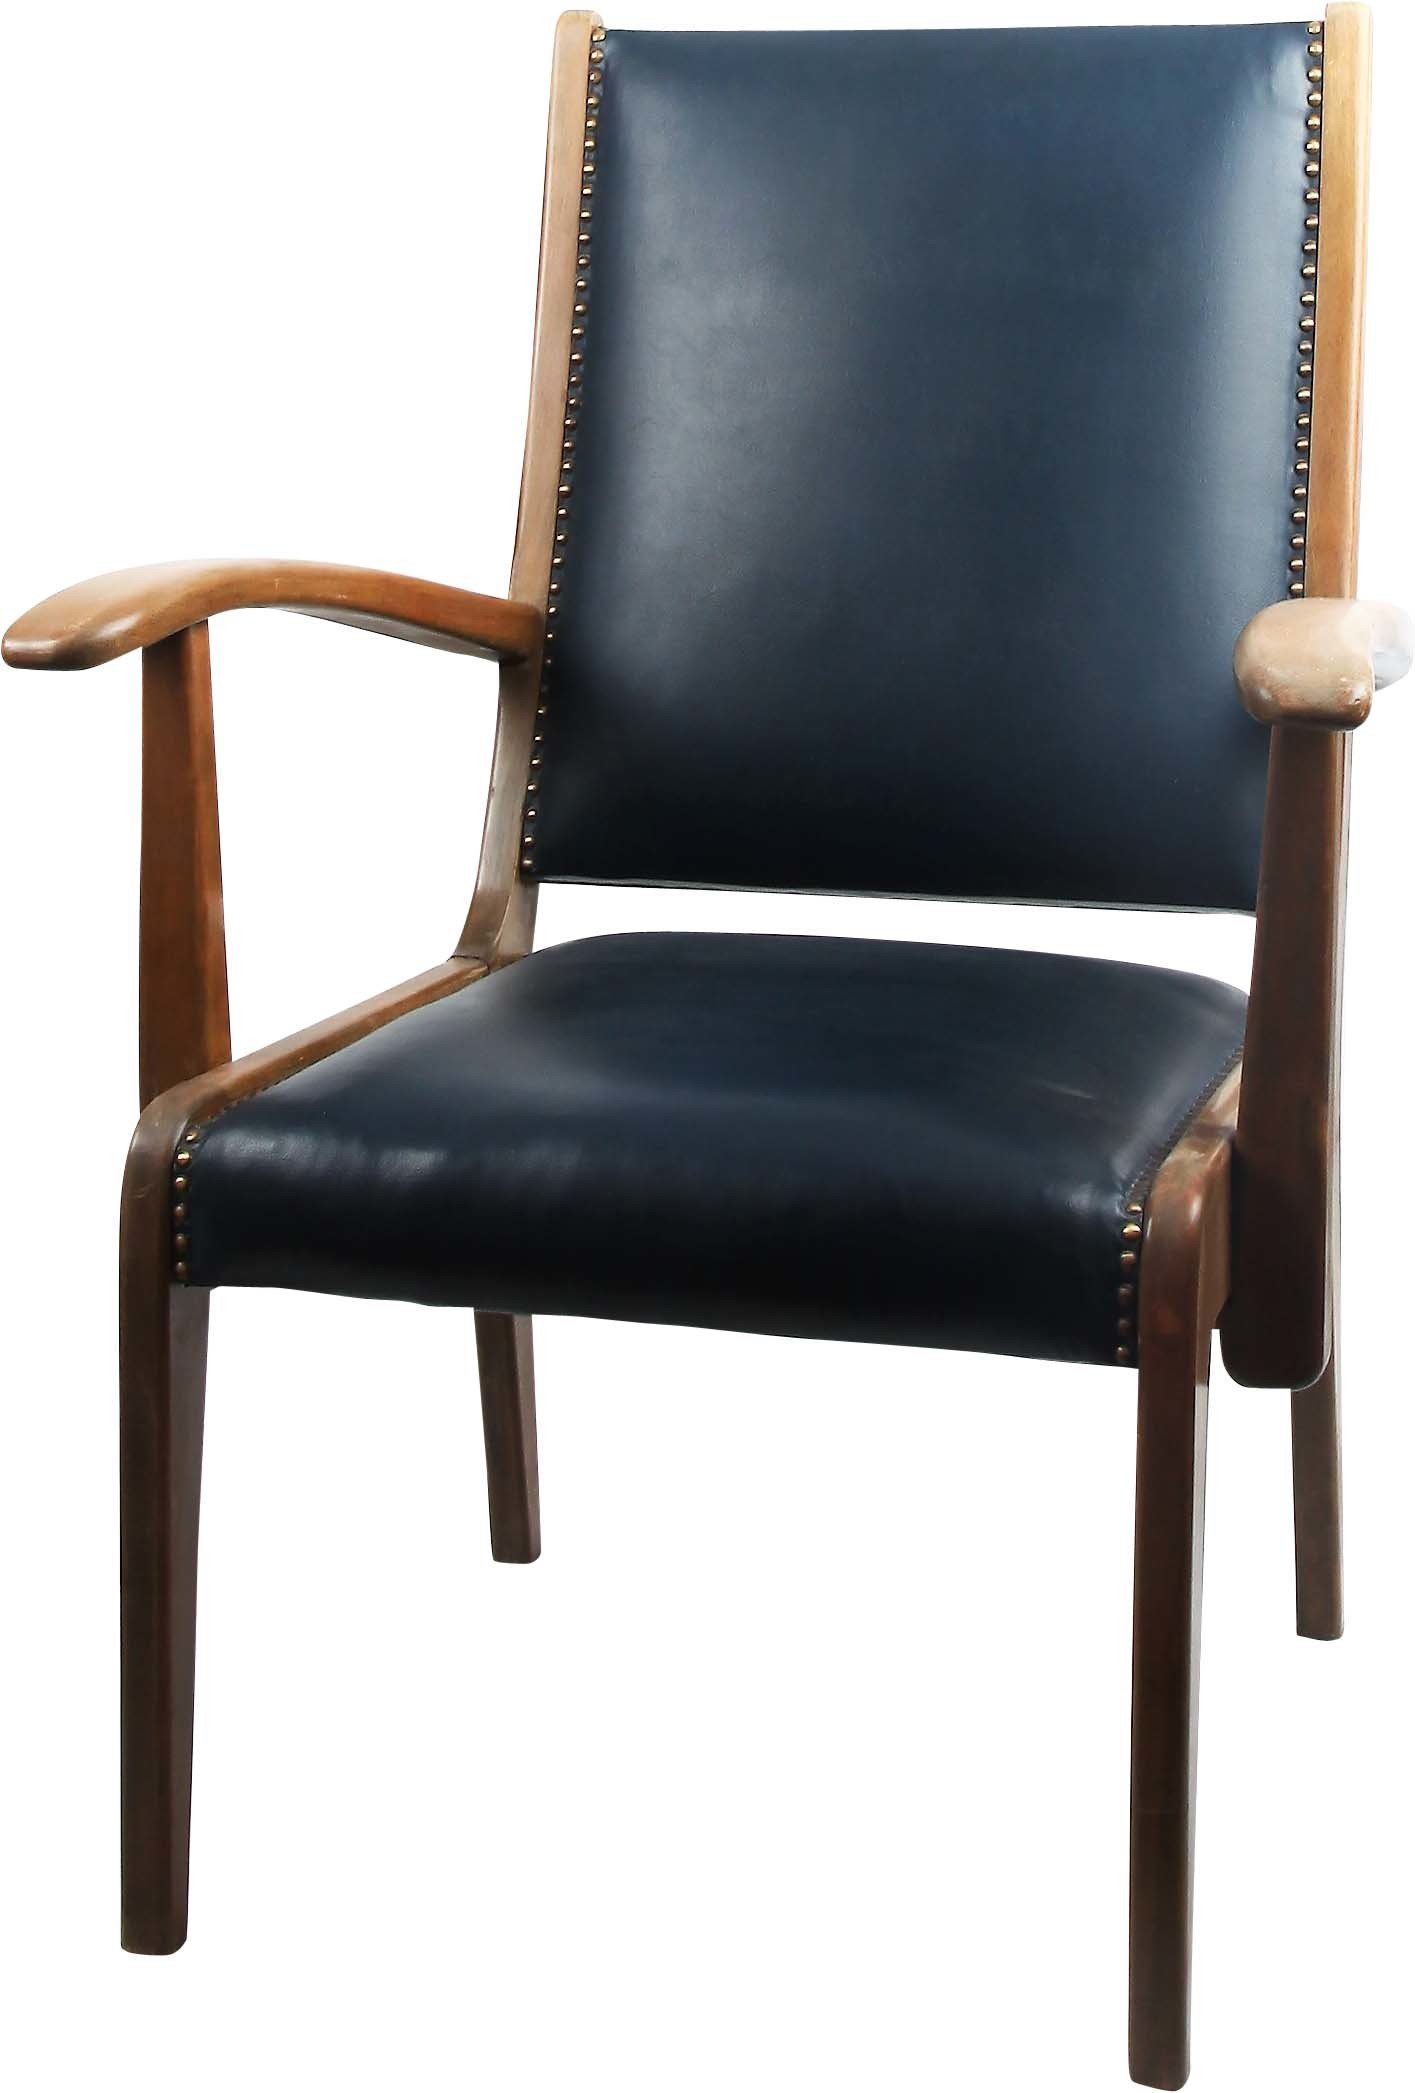 BundesStuhl Chair with Armrest by J. Krahn, 1940s